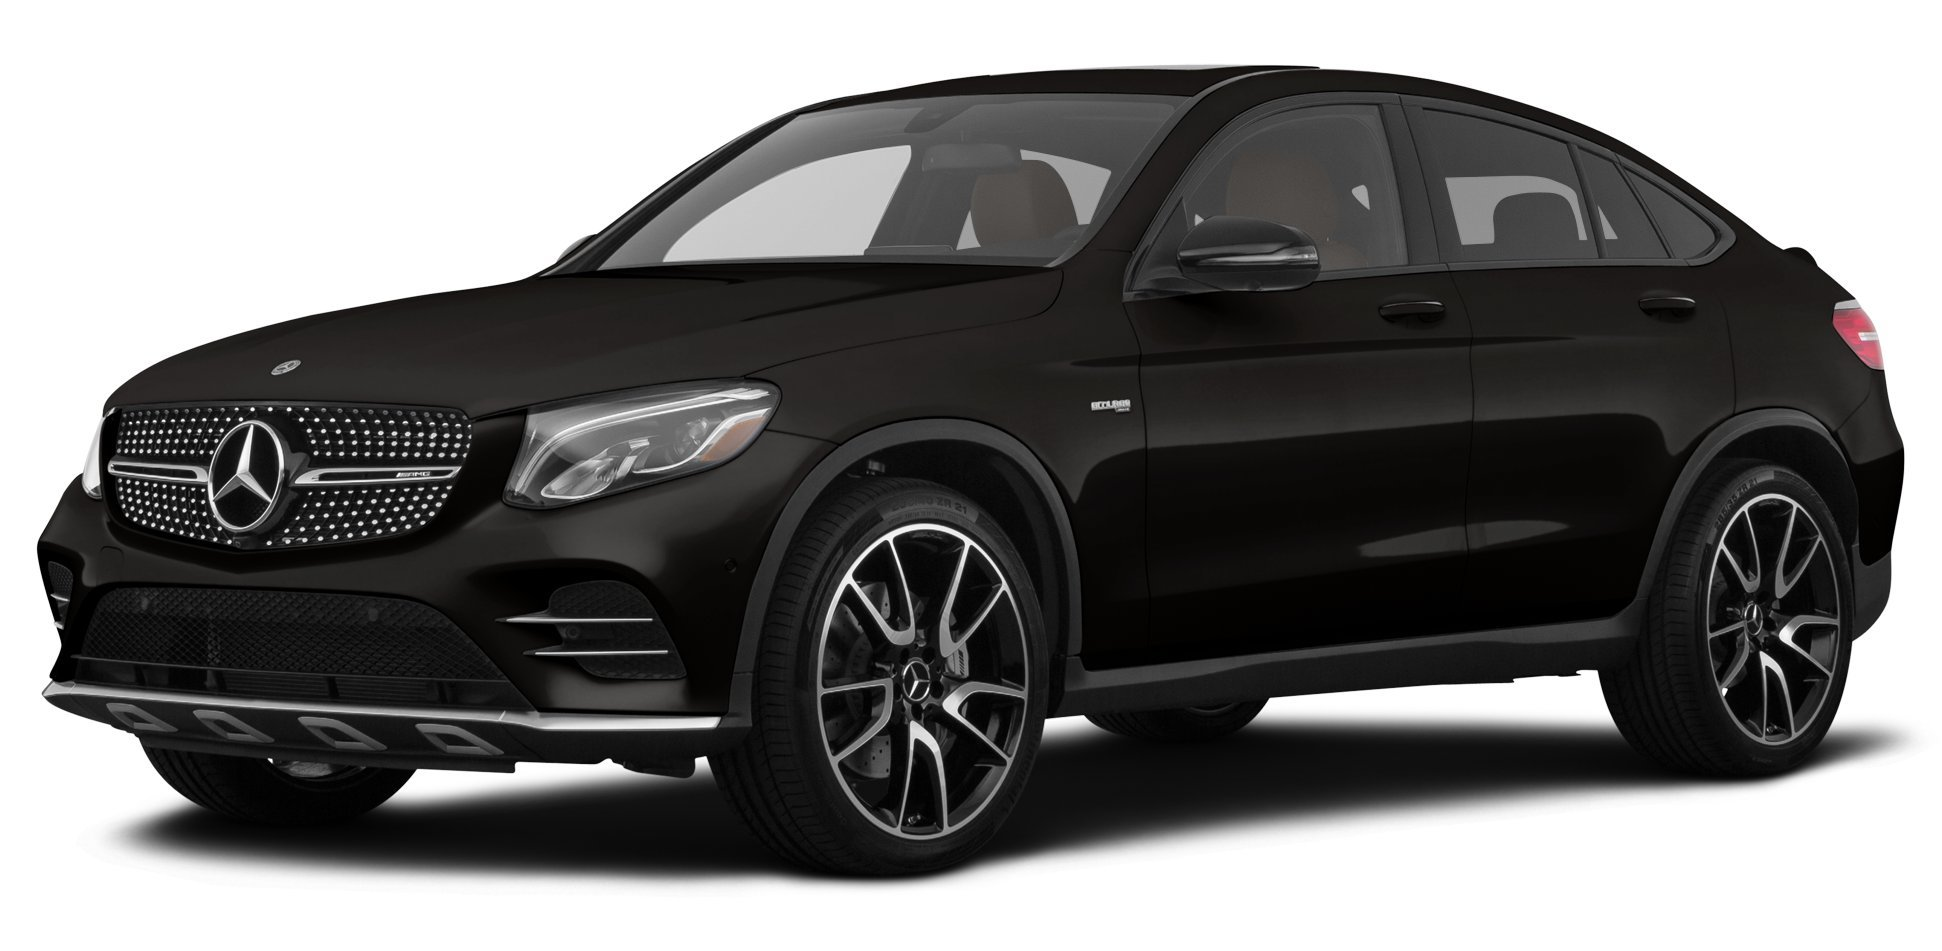 2017 mercedes benz glc300 reviews images and for Mercedes benz glc300 coupe